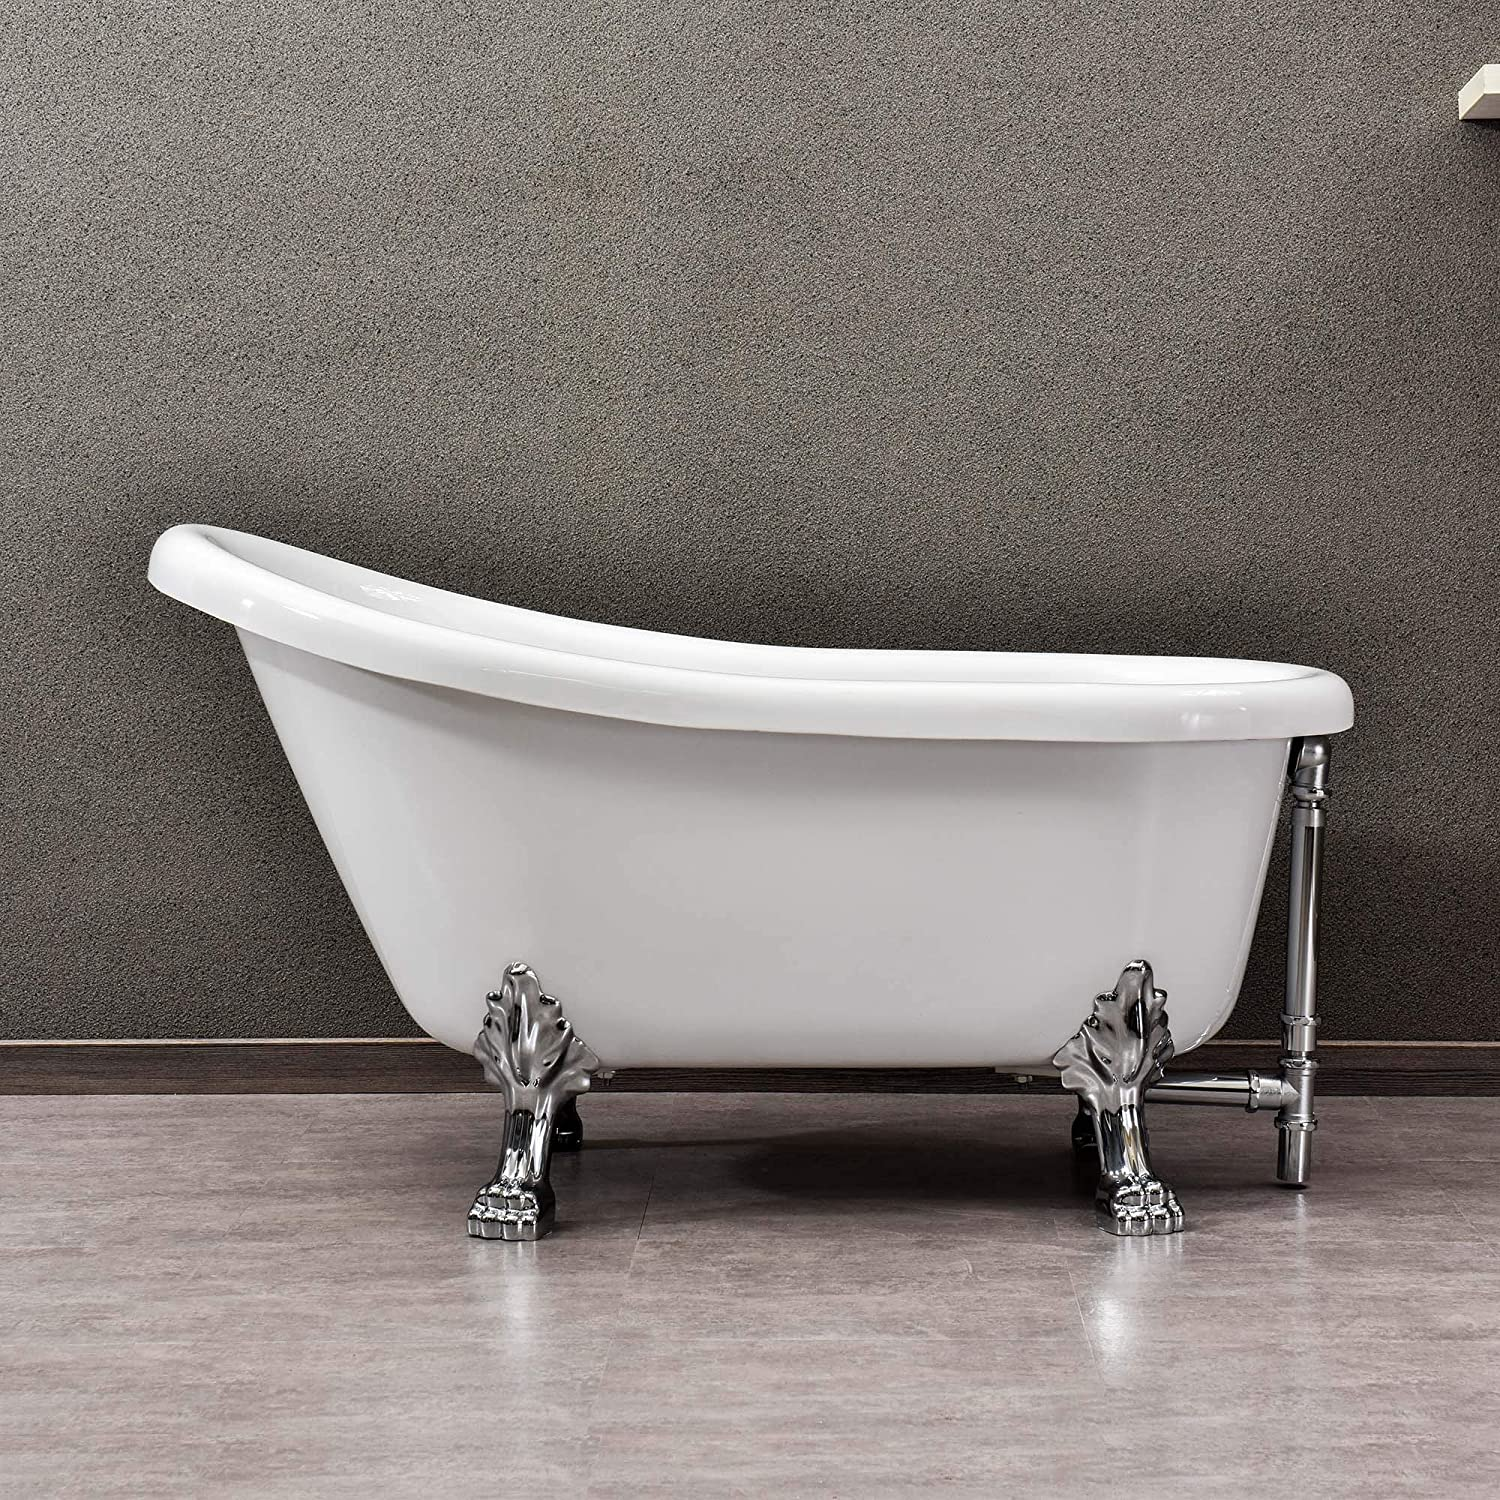 Clawfoot tub with silver toned feet is perfect for a chic vintage style classic bathroom design.